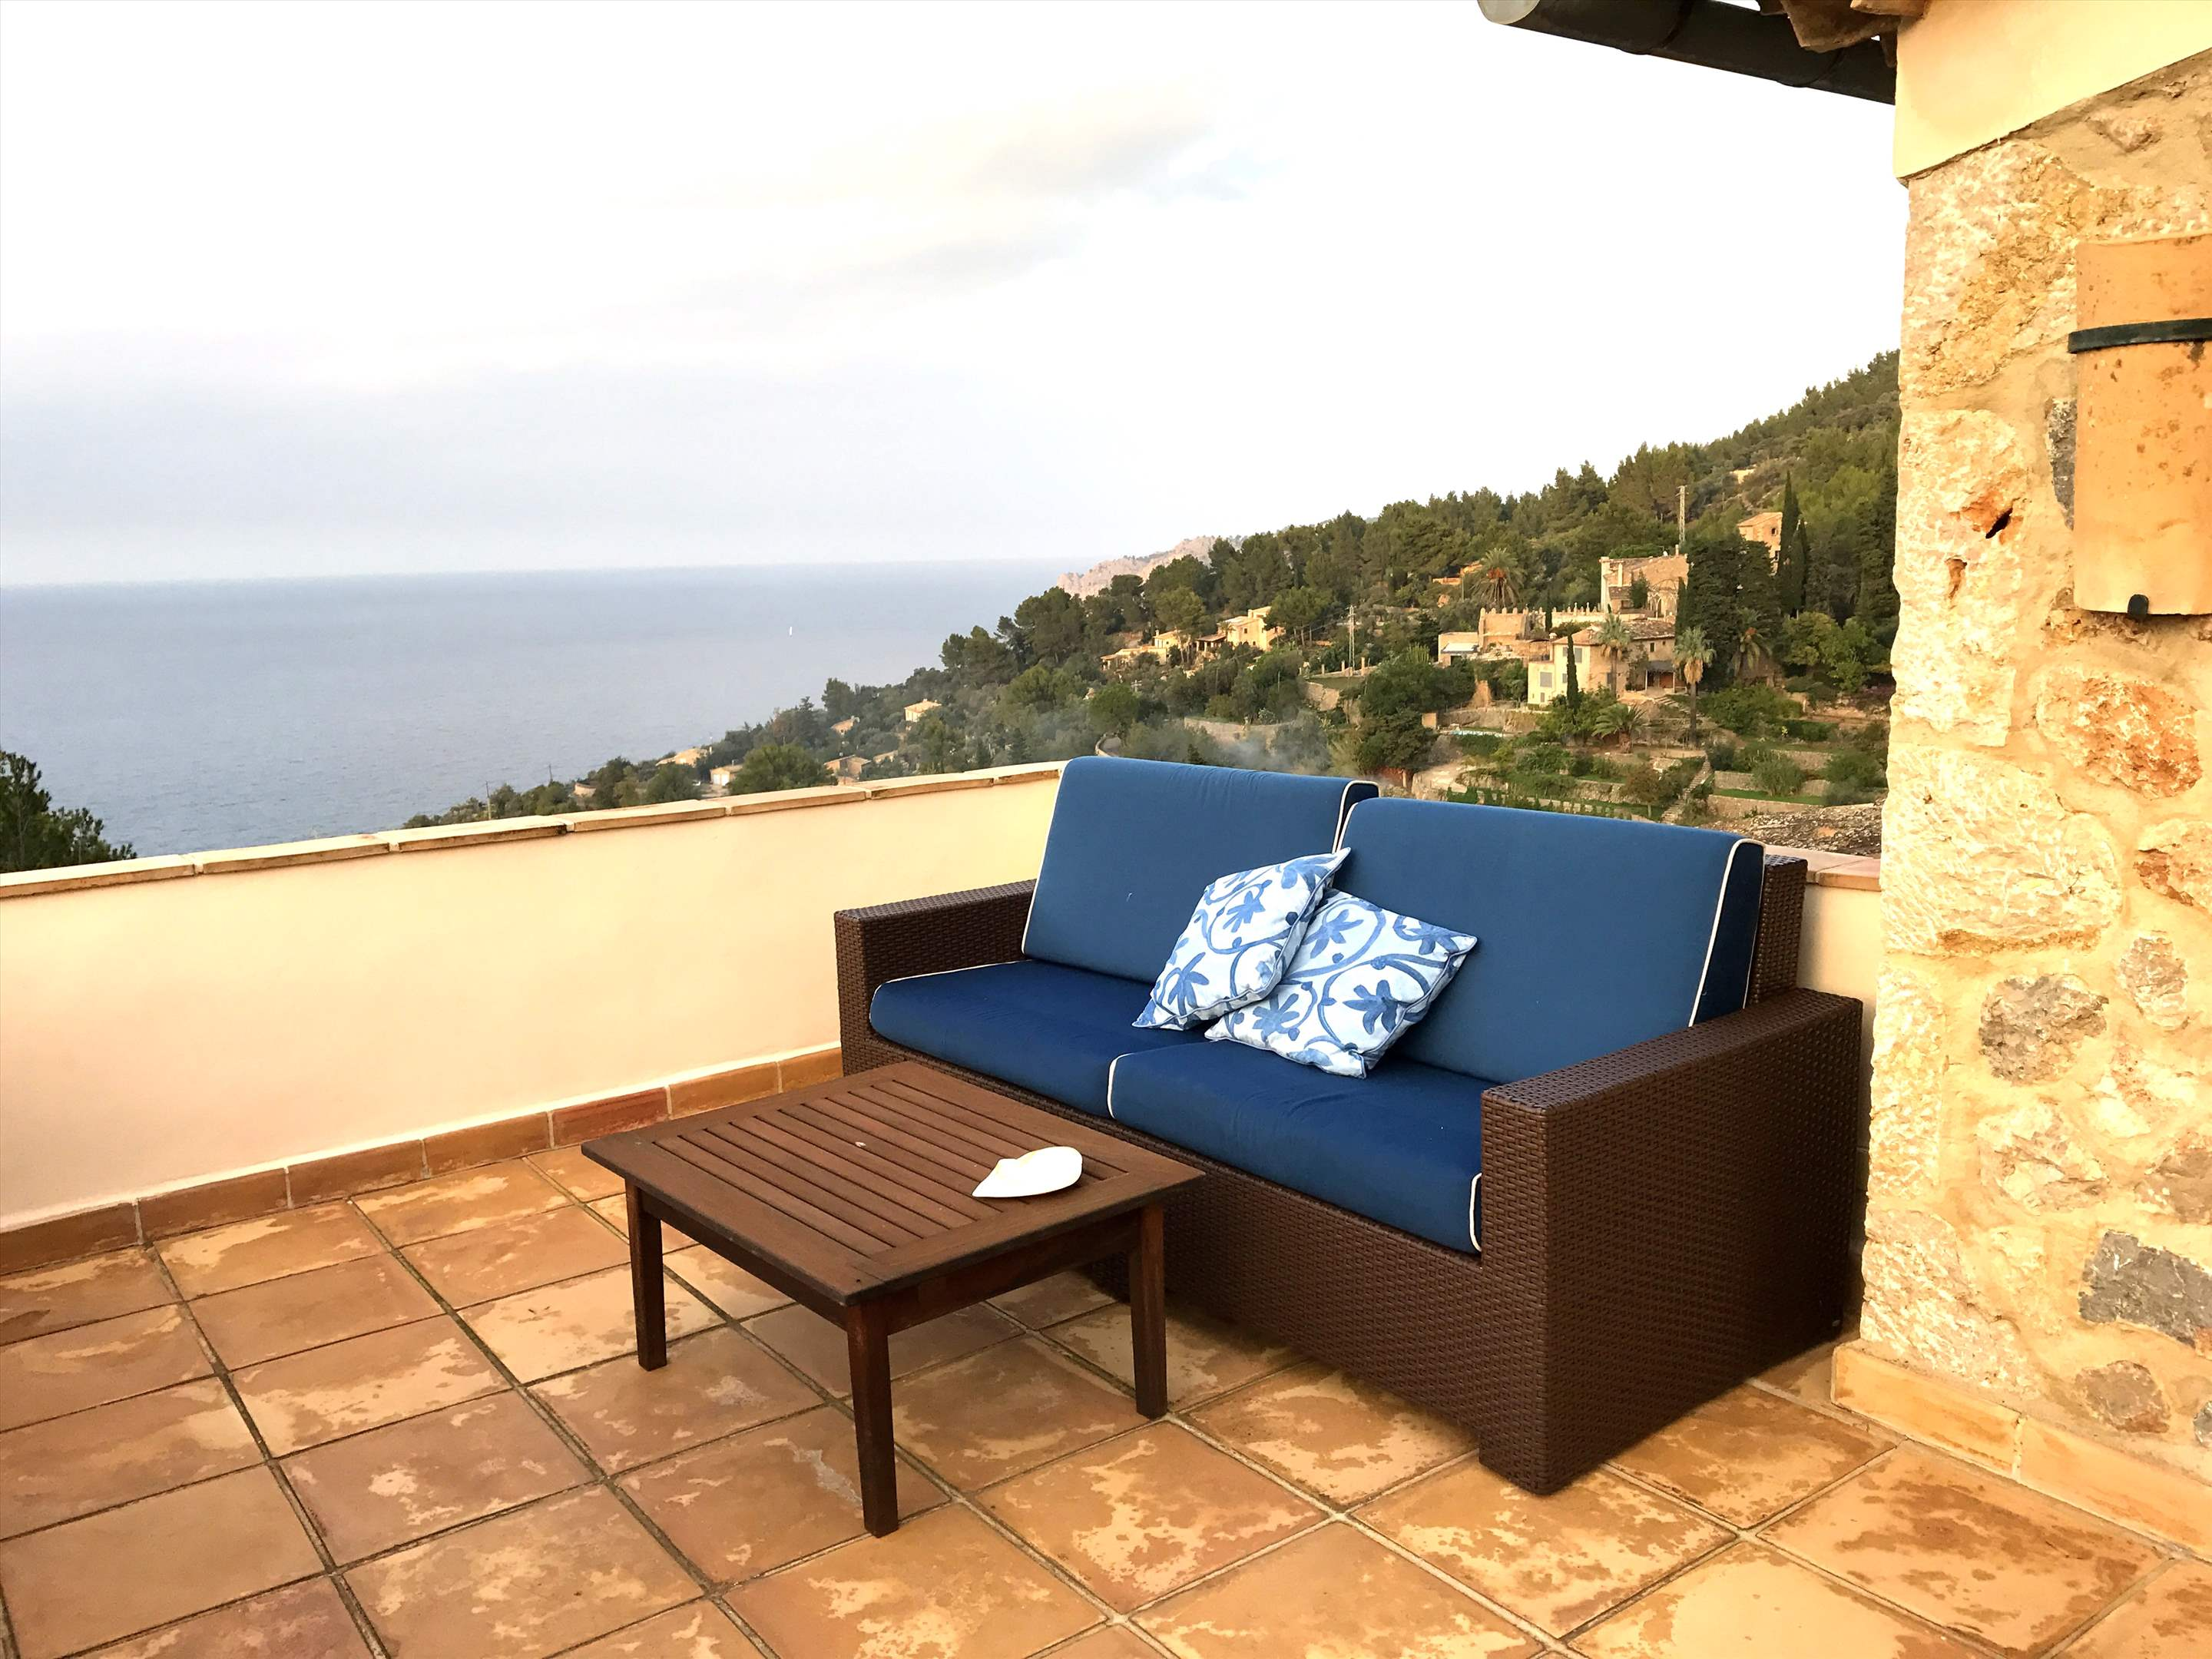 Can Winando, 4 Bedroom Rental, 4 bedroom villa in Soller & Deia, Majorca Photo #18